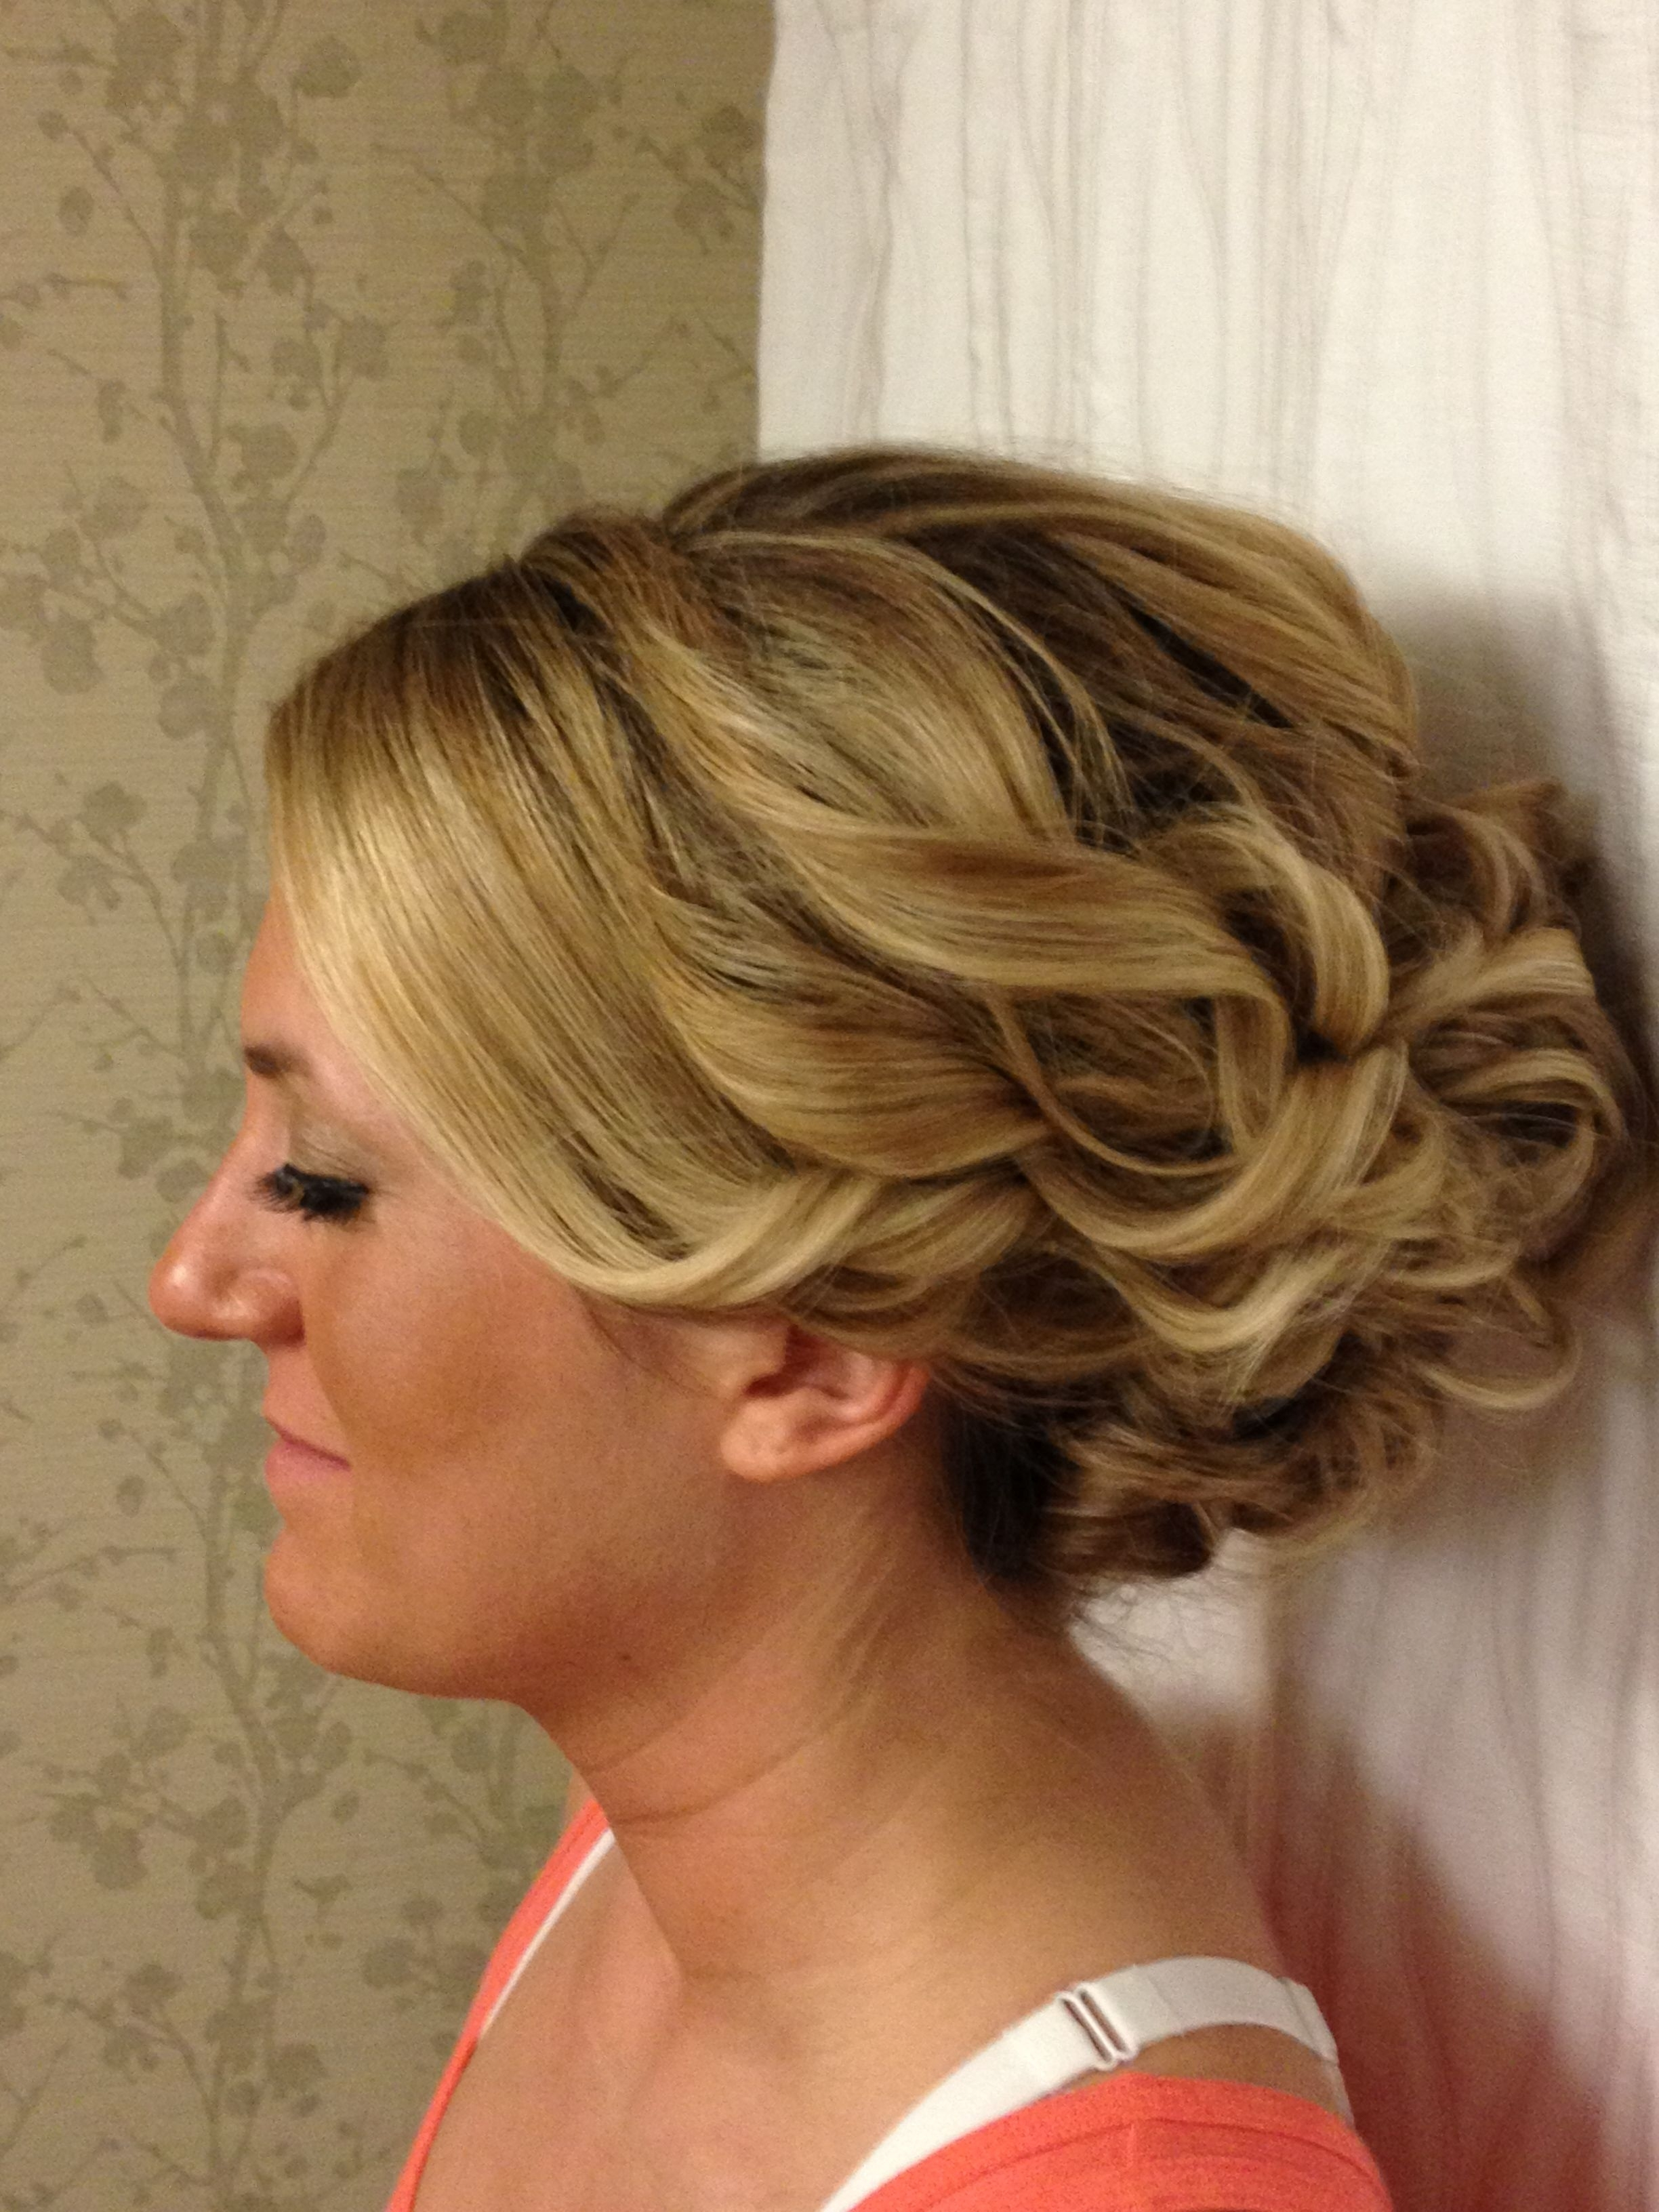 Best And Newest Wedding Hairstyles For Long Thick Hair Throughout Updo For Long, Thick Hair For Homecoming Or A Wedding (View 5 of 15)